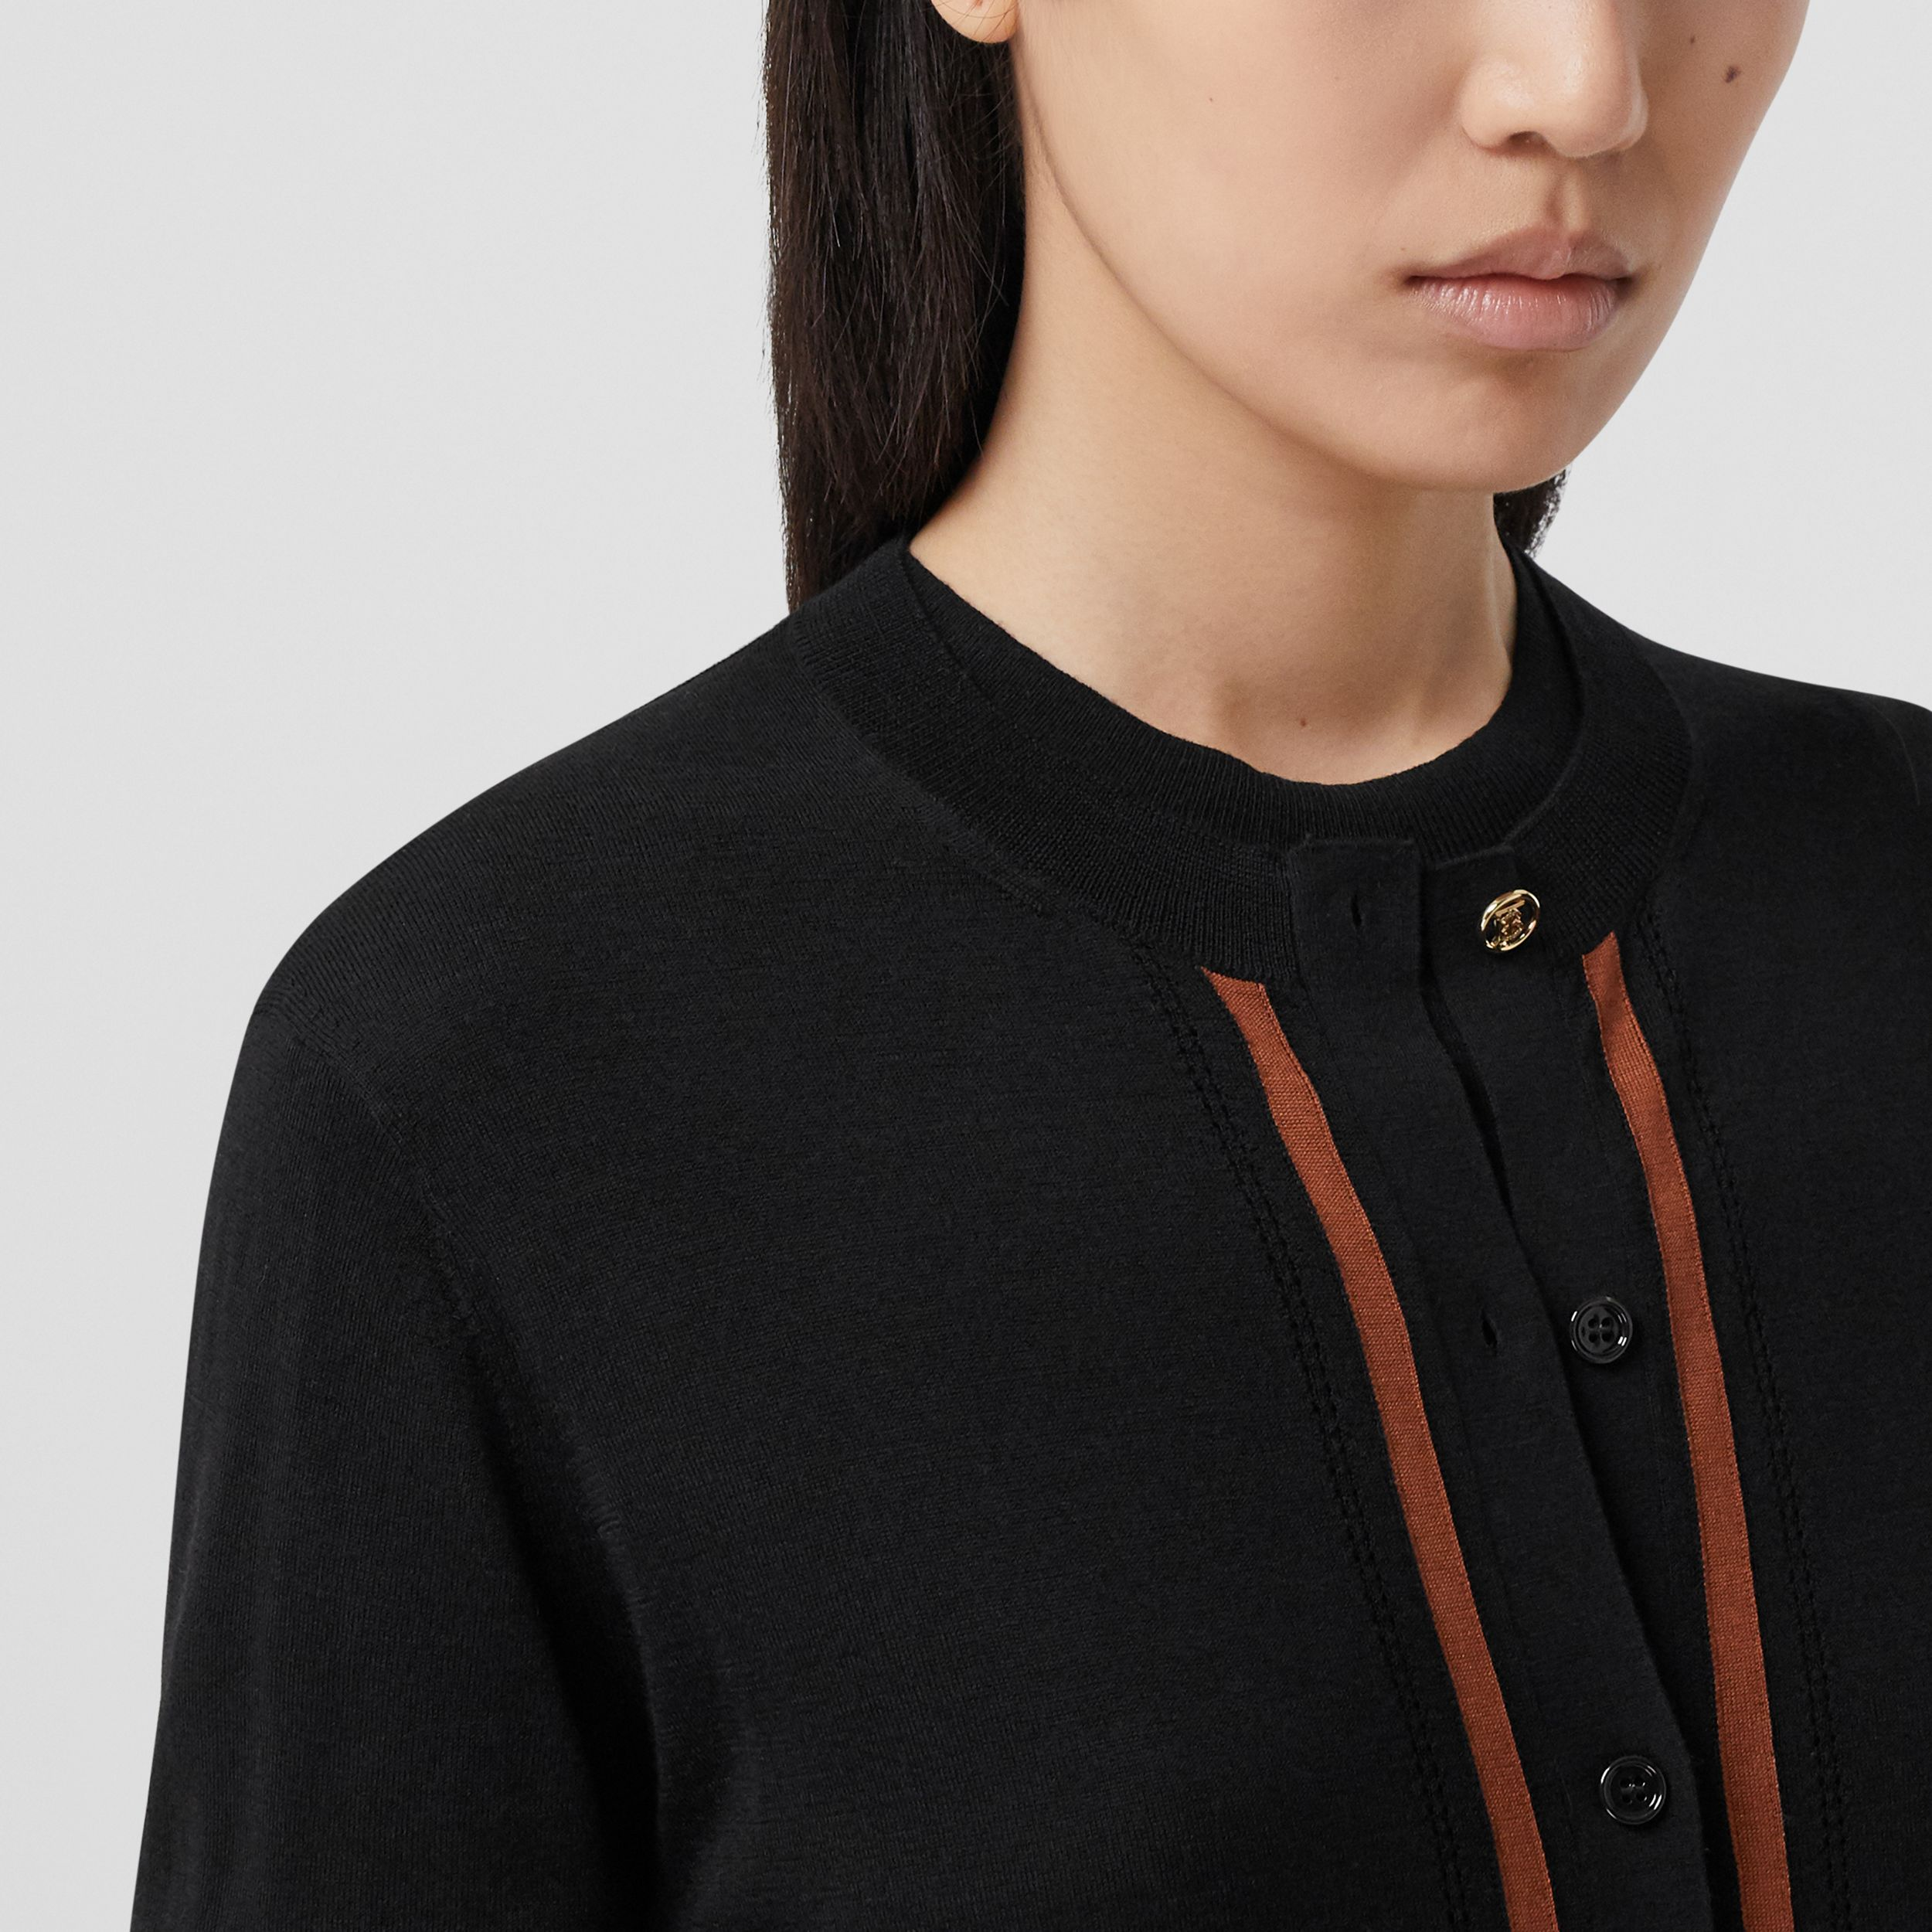 Monogram Motif Wool Silk Cashmere Cardigan in Black - Women | Burberry - 2